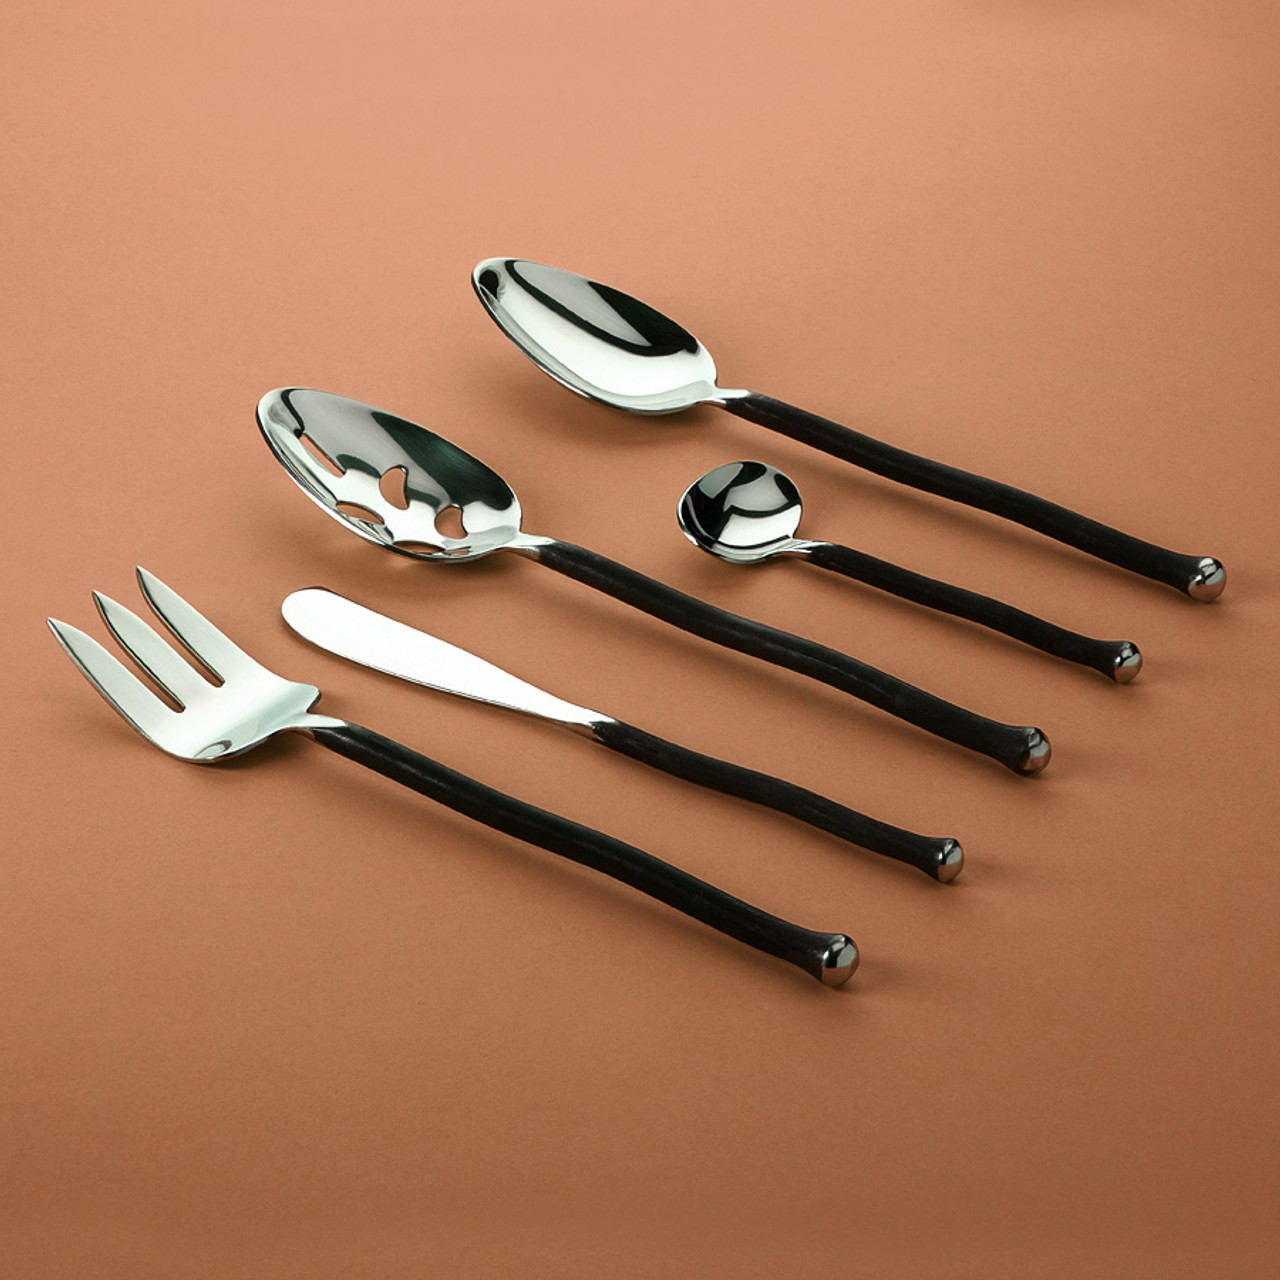 Montana flatware and cutlery by gourmetsettings.com